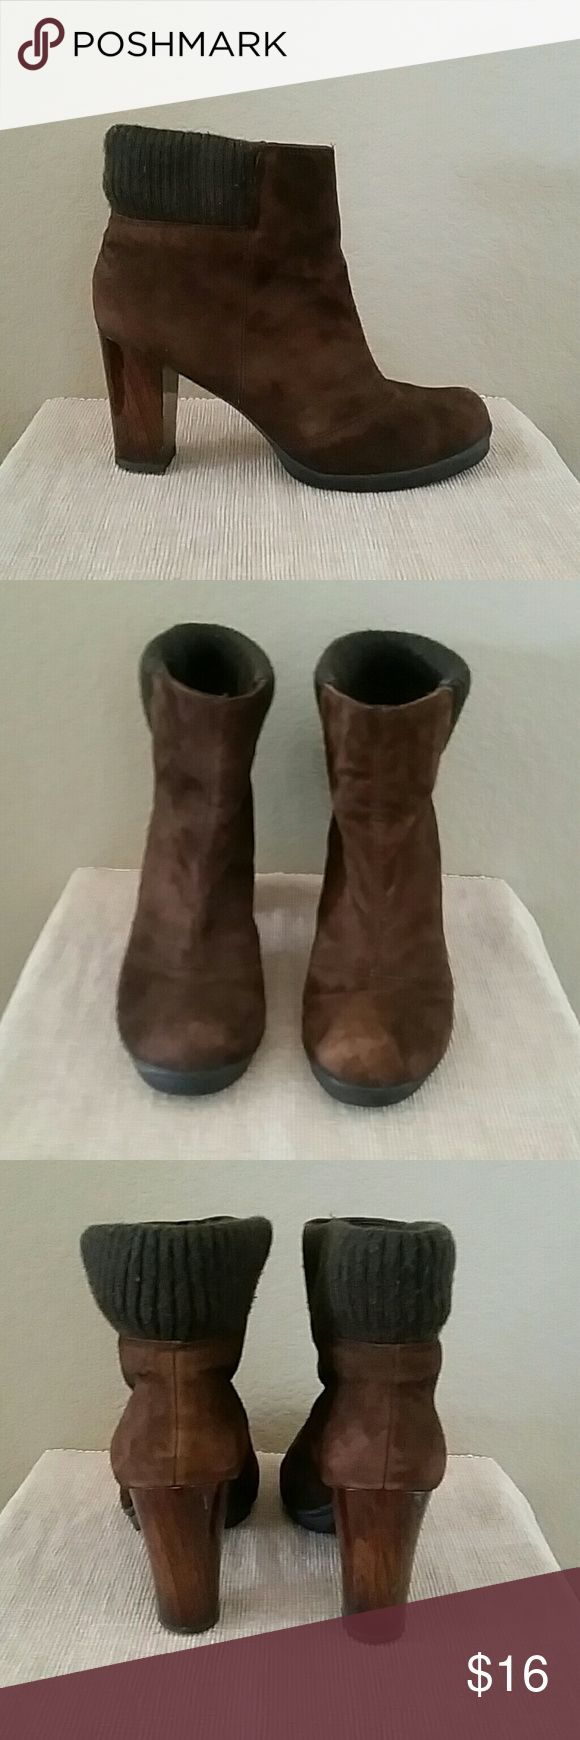 Kenneth Cole reaction brown heeled boots Kenneth Cole reaction Rose is a Rose heeled boots, pull on style, sweater top, 8 1/2 M, sweater top has slight pilling, 3 1/2 inch heel, block type heel, booties Kenneth Cole Reaction Shoes Ankle Boots & Booties